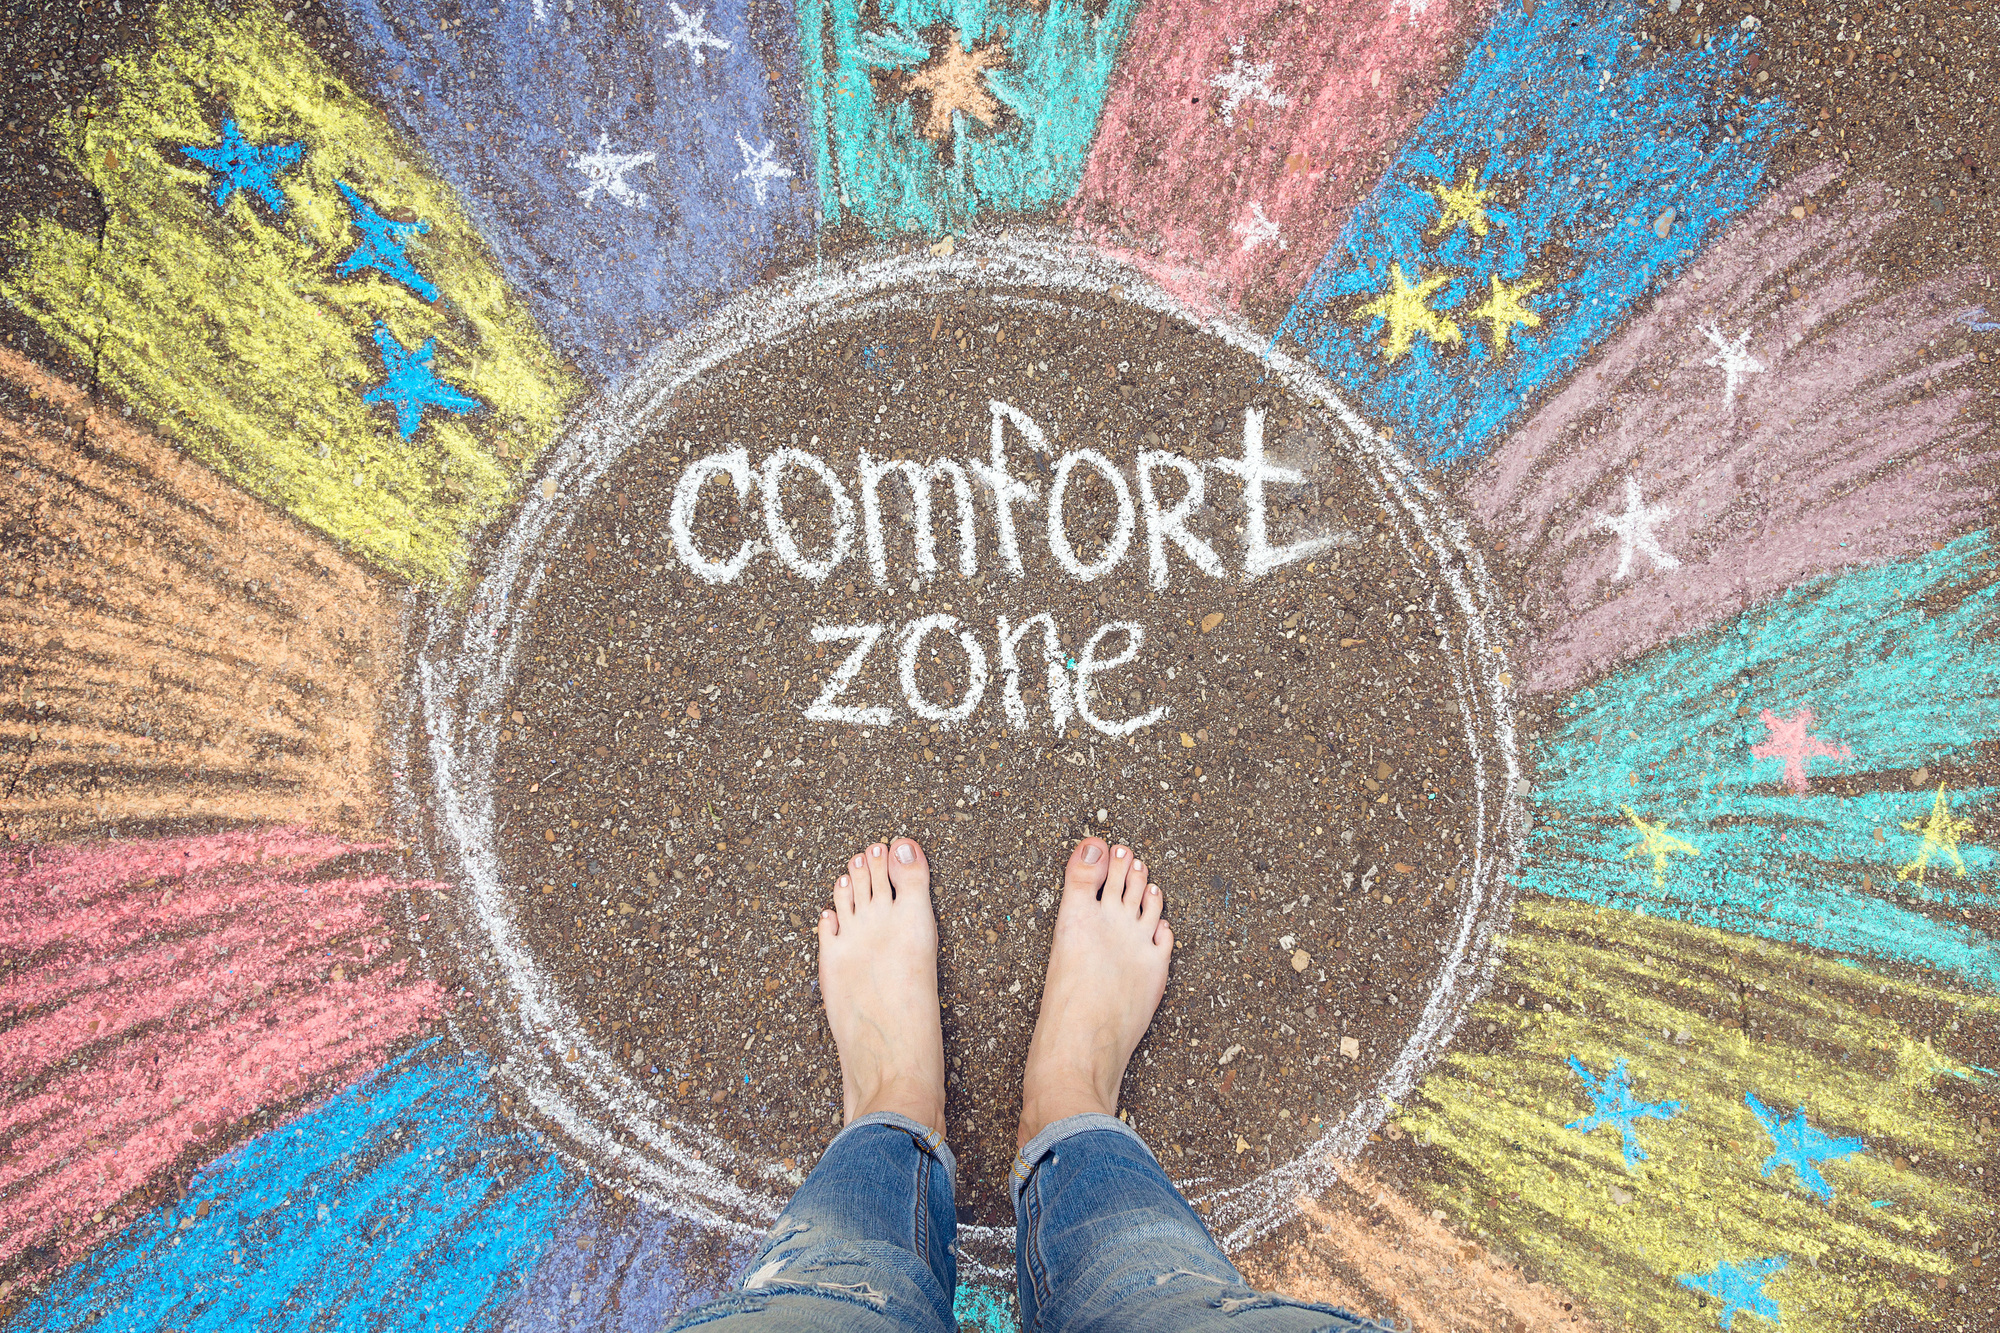 comfort zone written in chalk